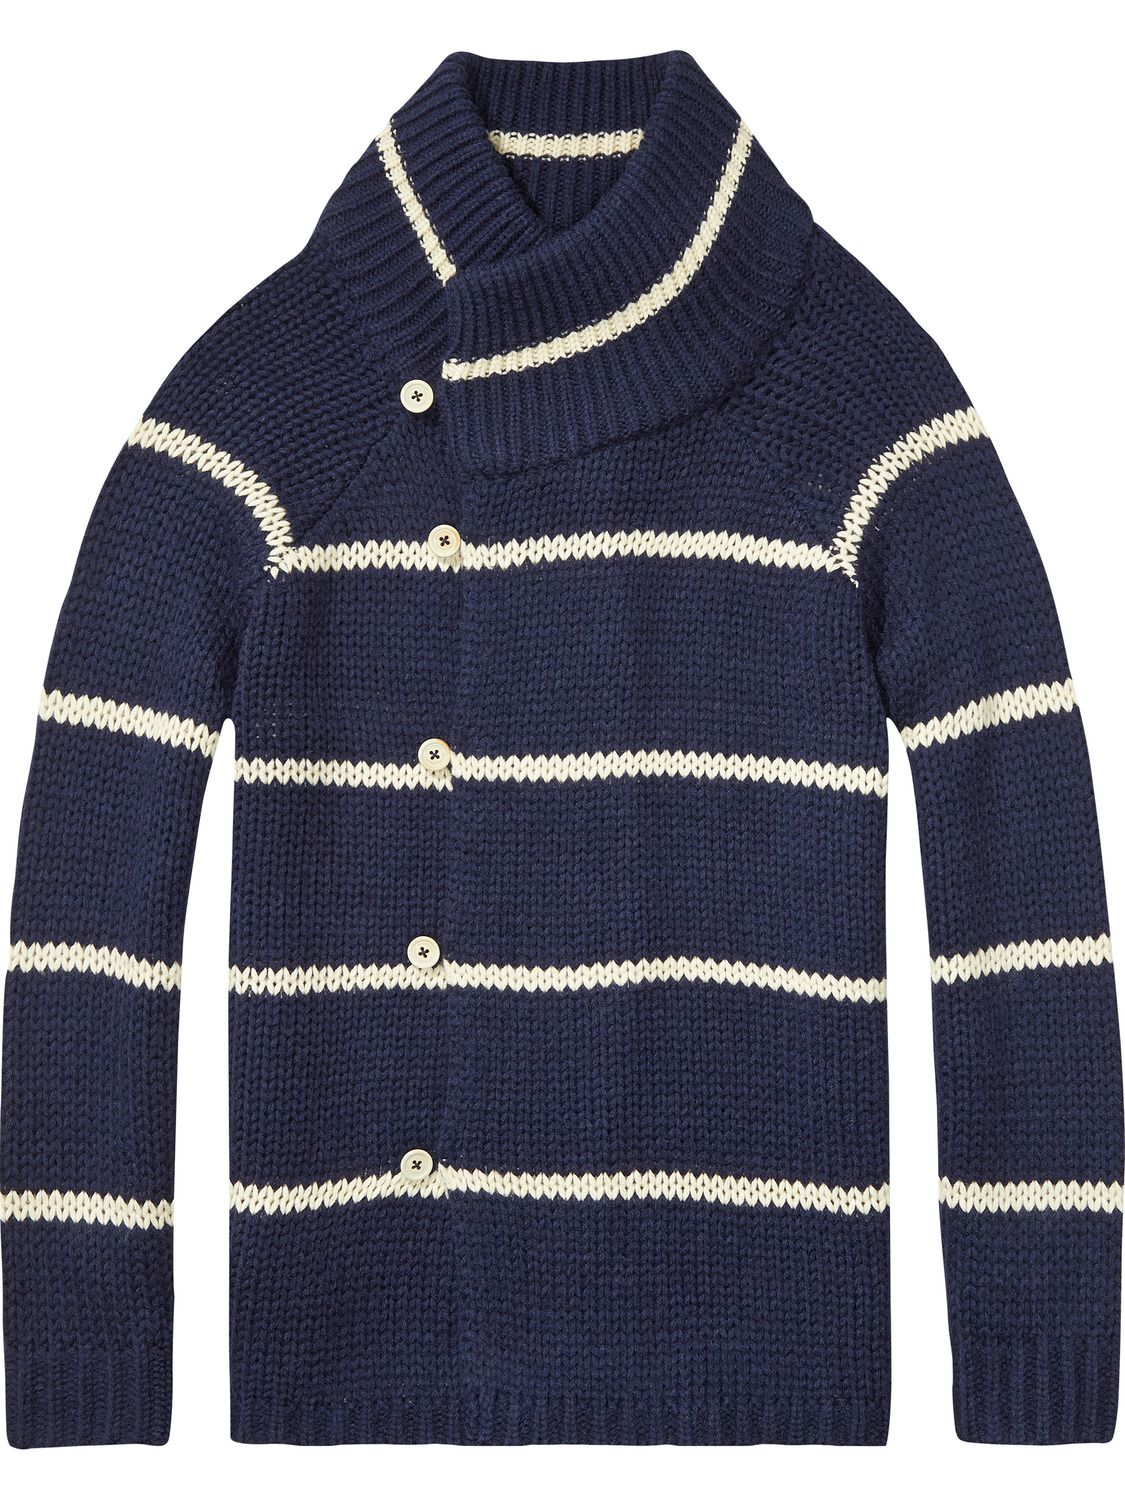 Chunky Cardigan | Home Alone | Pullovers | Men Clothing at Scotch ...